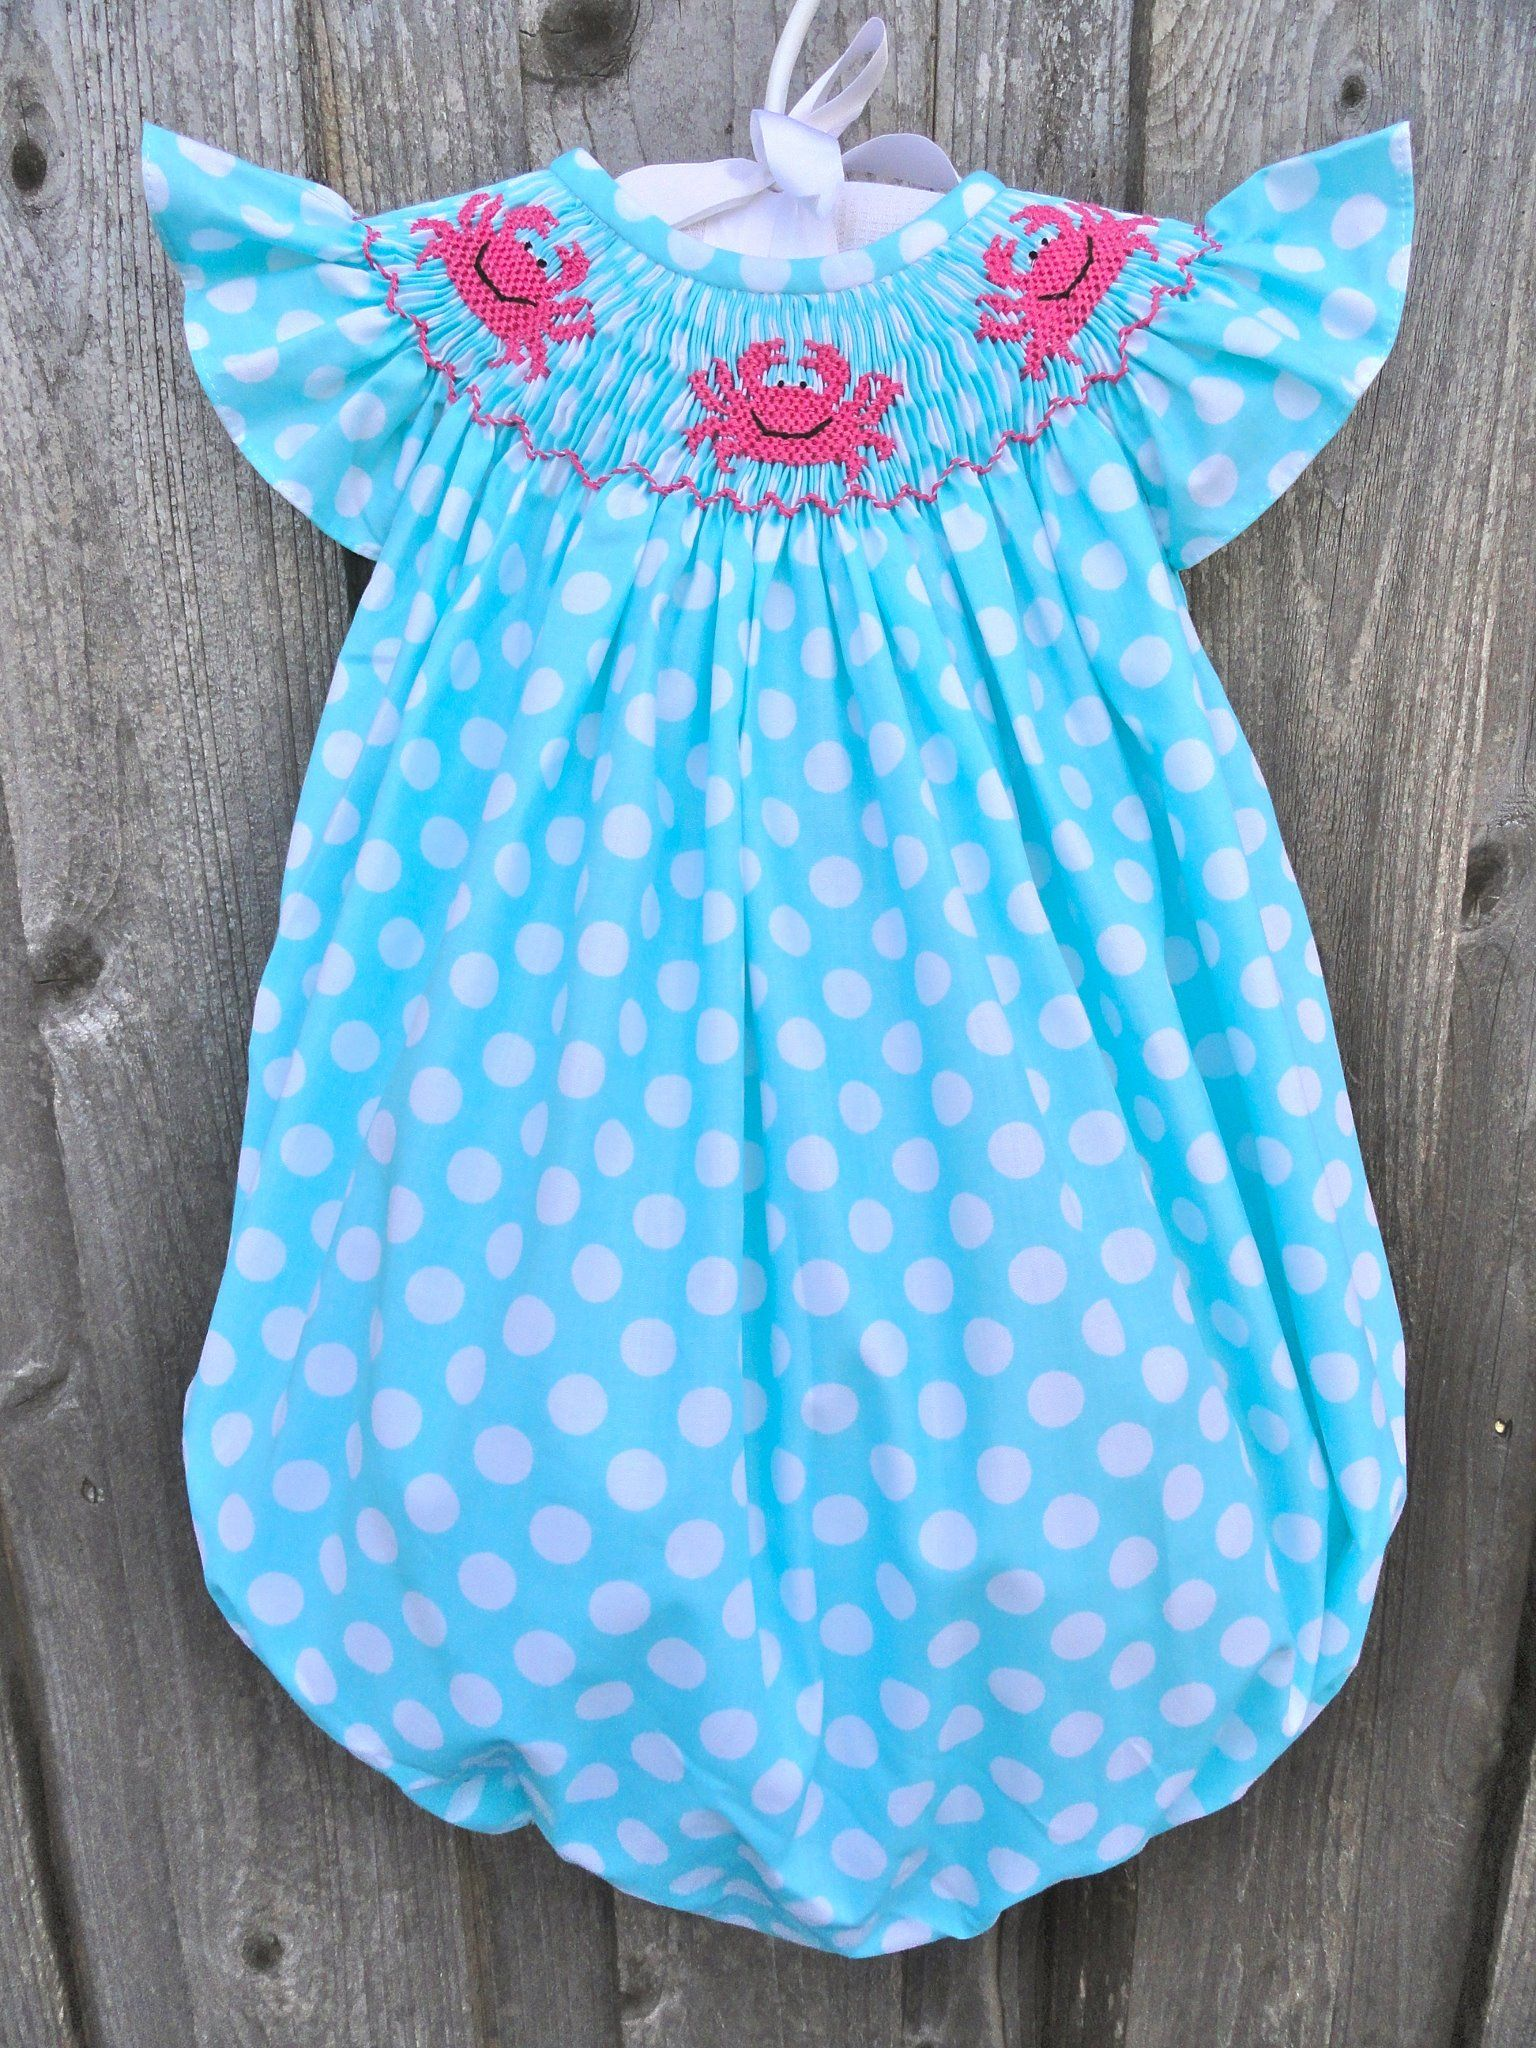 484df26ec7f Turquoise Polka Dot Smocked Crab Bubble from Smocked Auctions